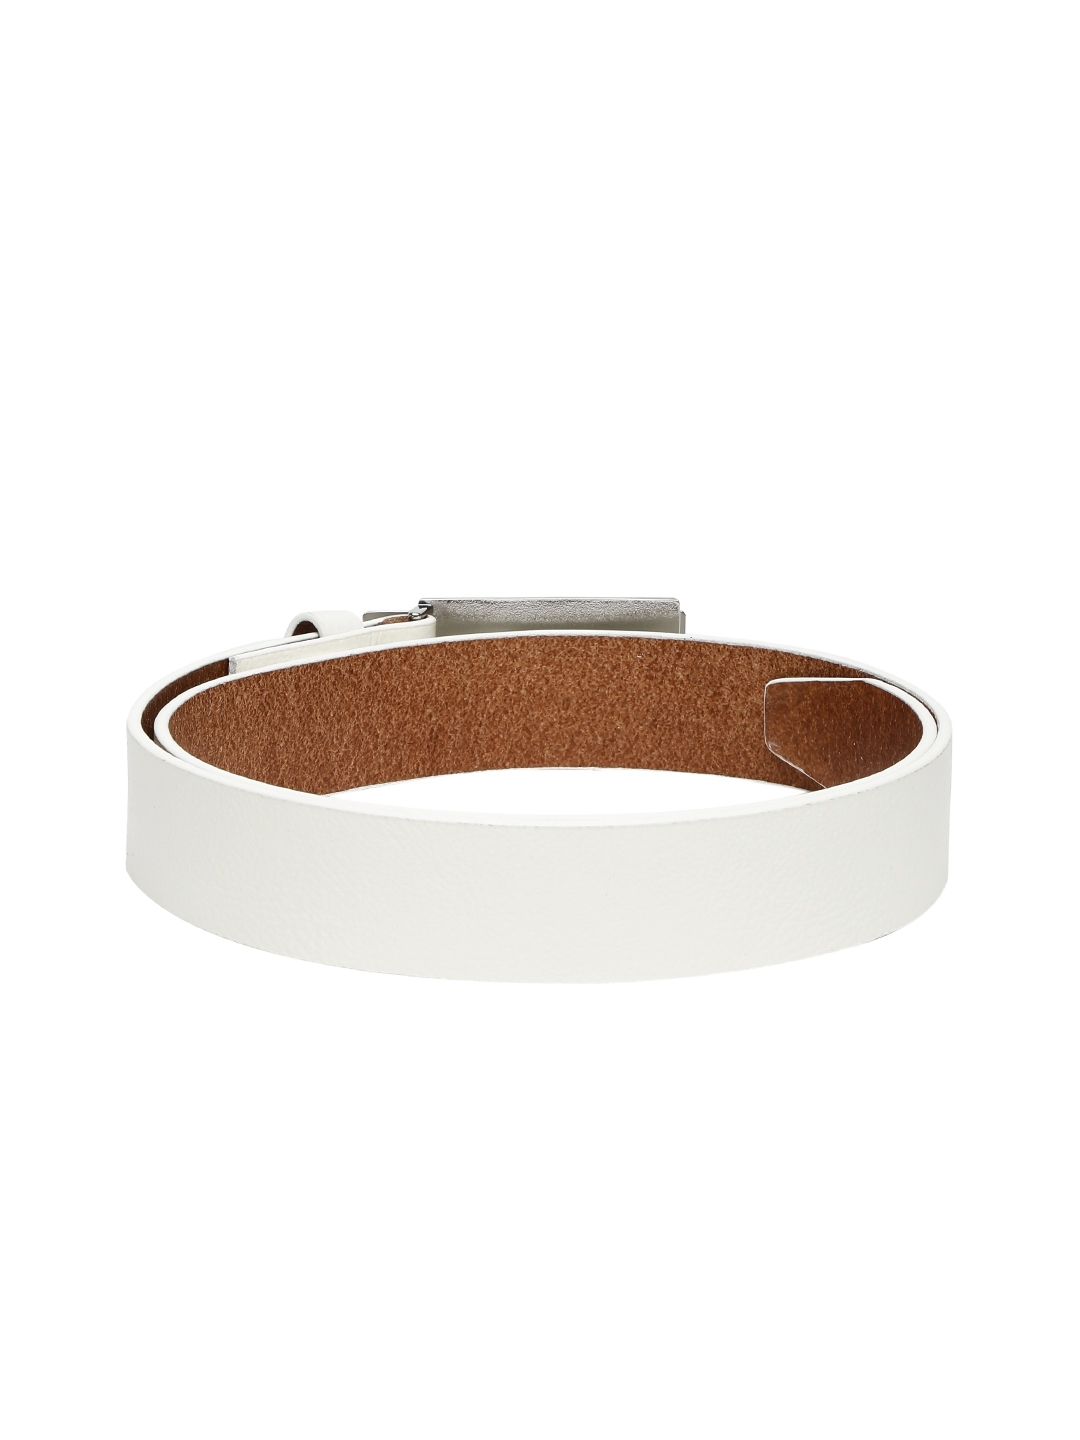 fdcac6b04a9c Buy Puma Men White Genuine Leather High Flyer Golf Belt - Belts for ...